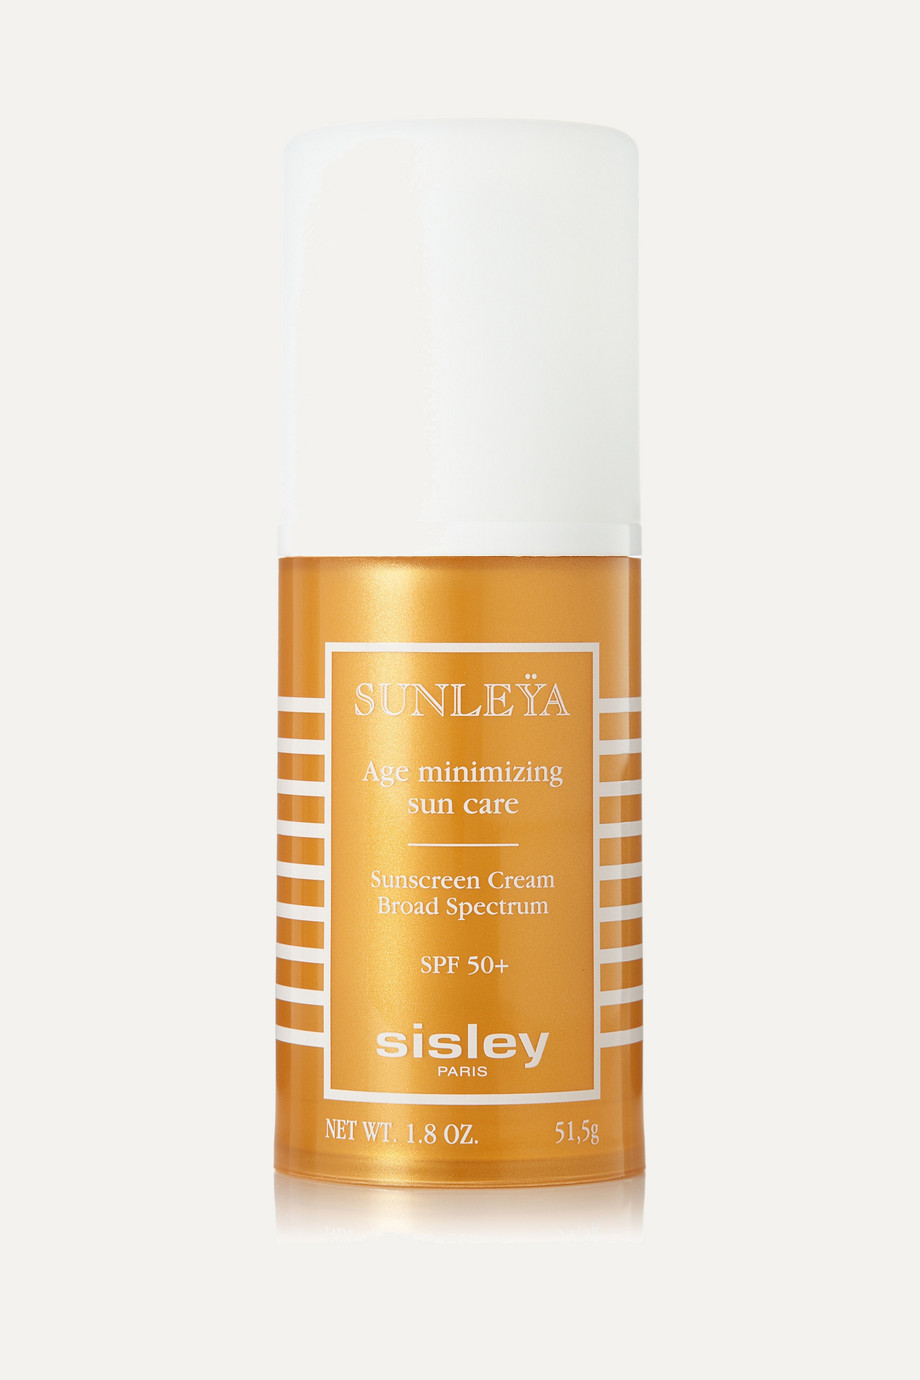 Spf50 Sunleÿa Age Minimizing Sunscreen Cream Broad Spectrum, 51.5g, by Sisley - Paris